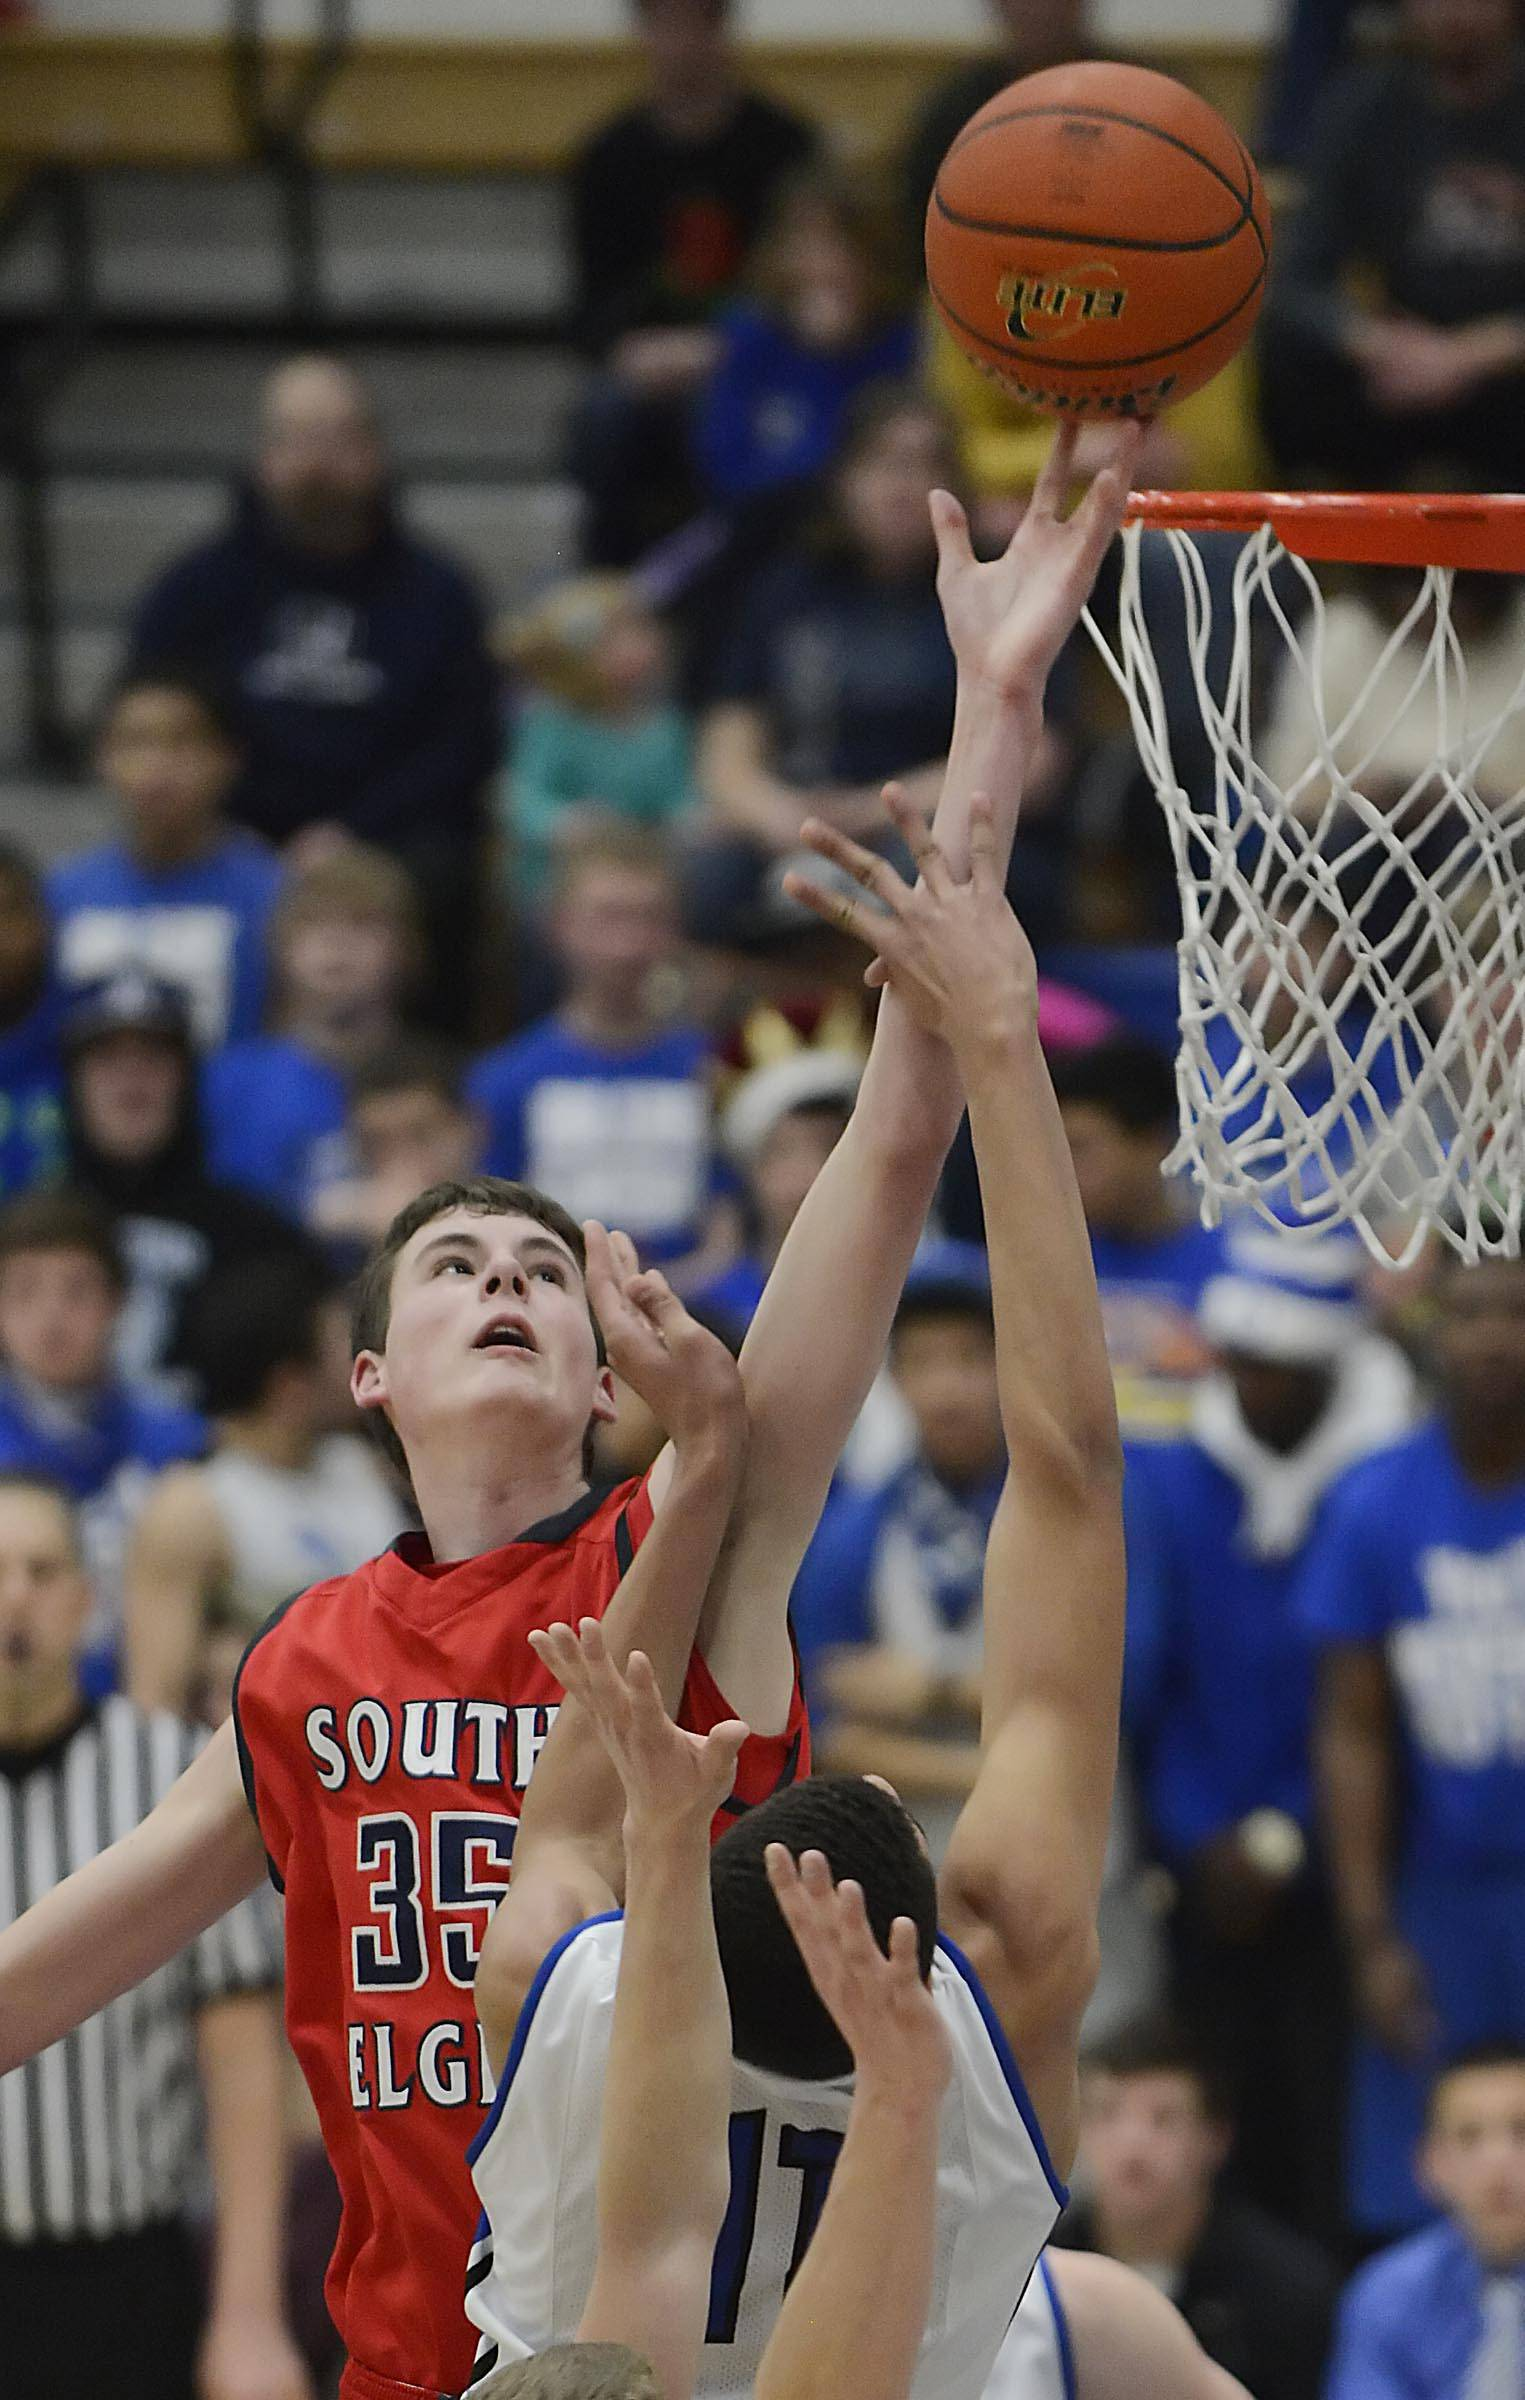 John Starks/jstarks@dailyherald.comSouth Elgin's Tyler Hankins stretches for a rebound over Larkin's Christian Negron Tuesday in the St. Charles North regional game.